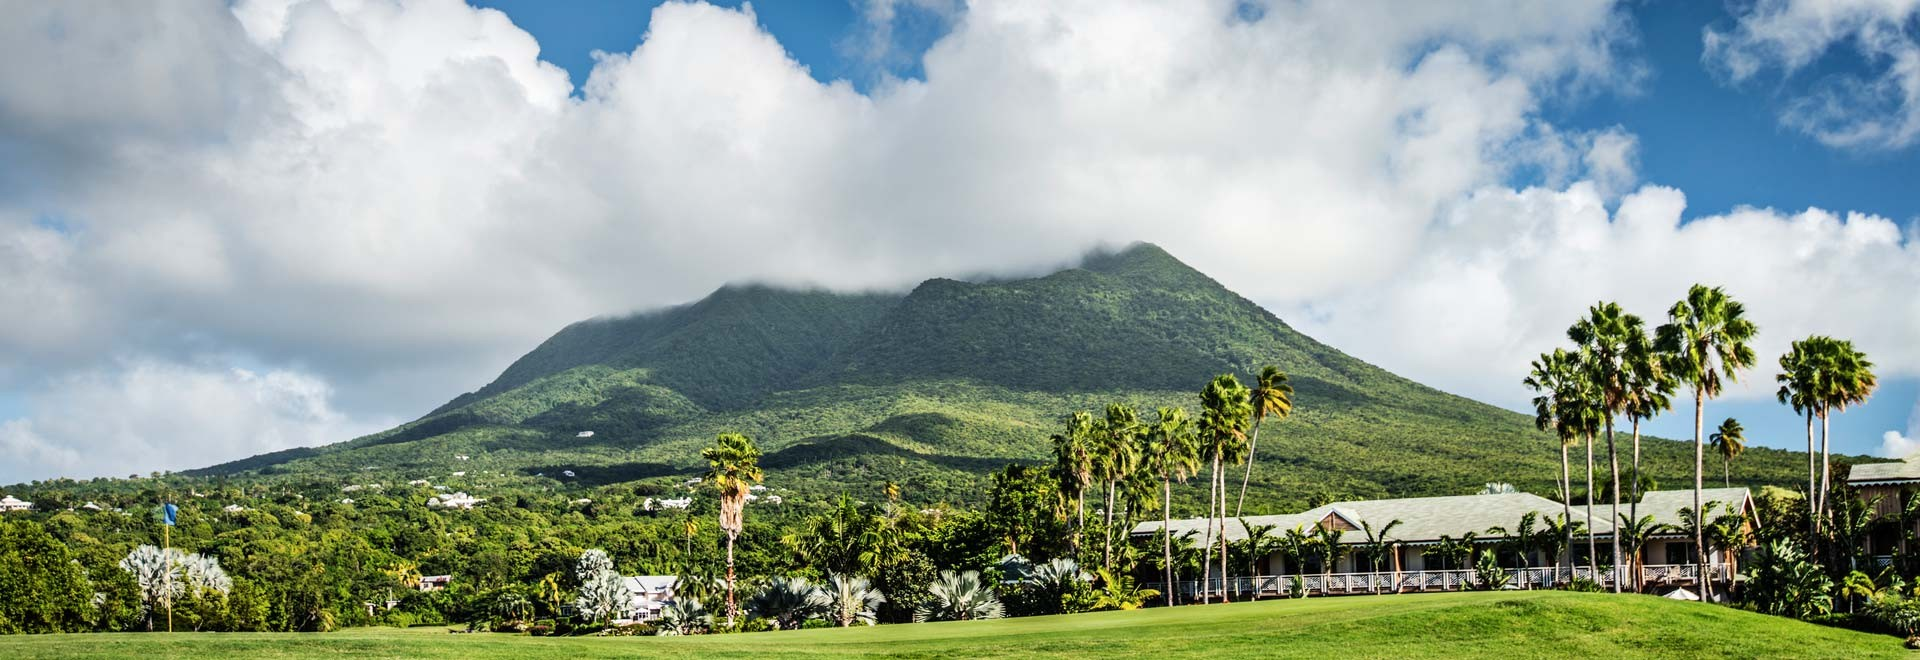 Tennis Vacations and Holidays in Saint Kitts and Nevis - Book tennis resorts and tennis camps in Saint Kitts and Nevis